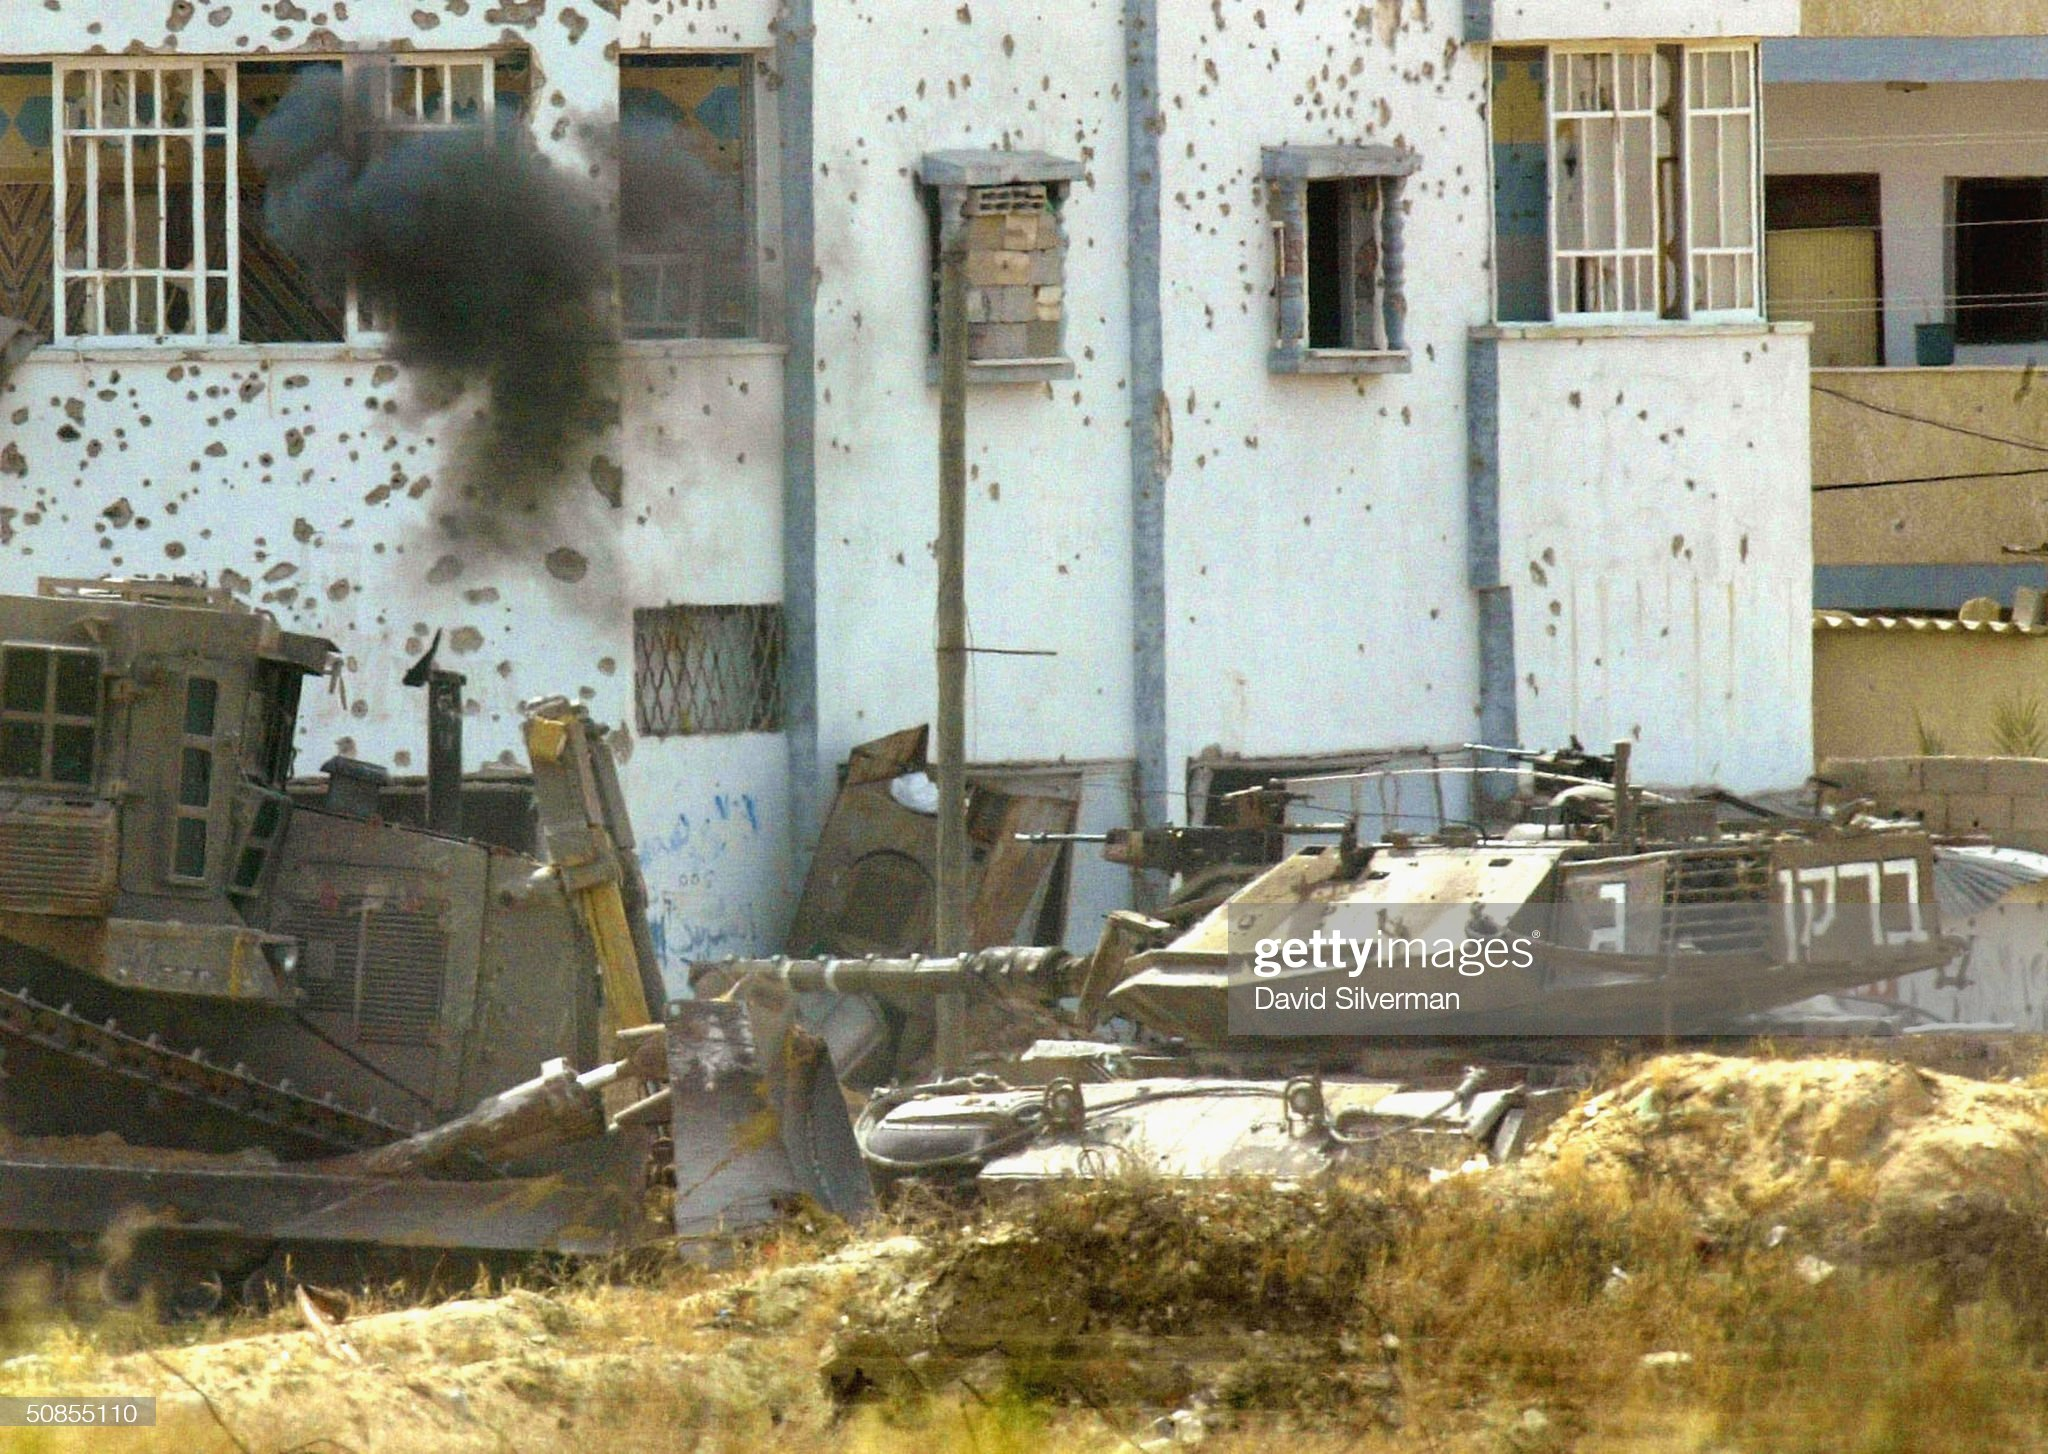 https://media.gettyimages.com/photos/an-israeli-army-merkava-tank-and-an-armored-bulldozer-operate-on-may-picture-id50855110?s=2048x2048